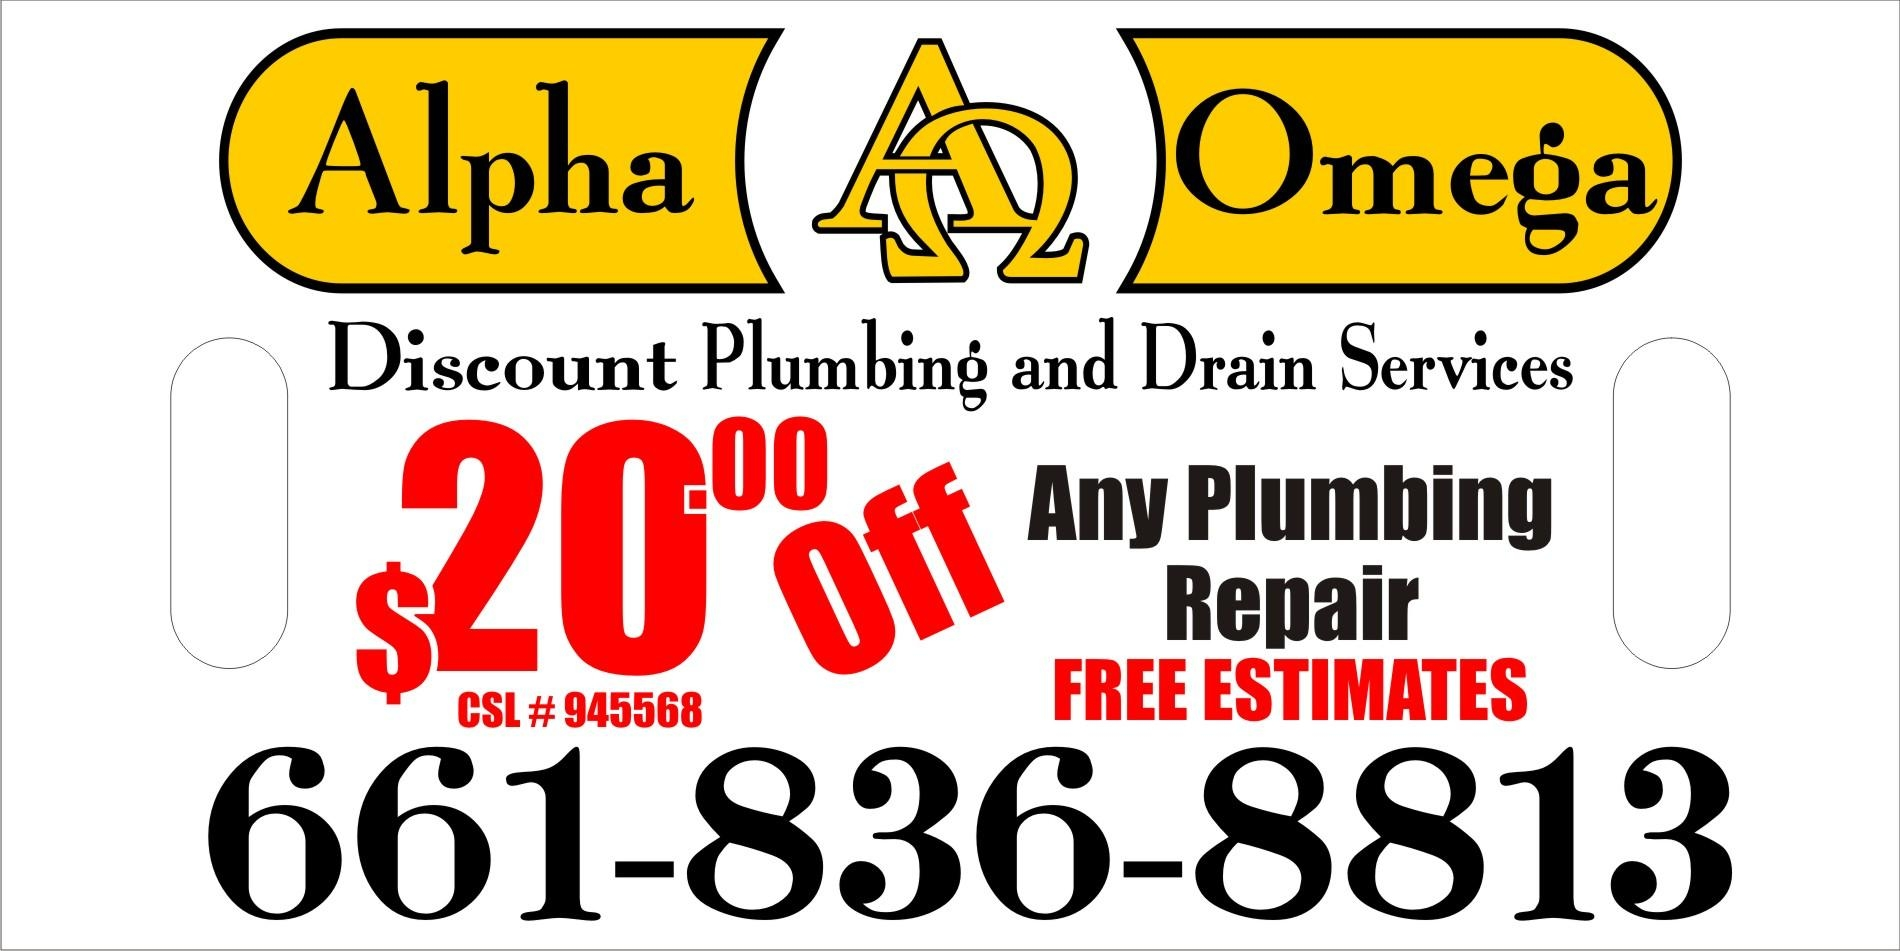 Alpha Omega Discount Plumbing Amp Drain Services In